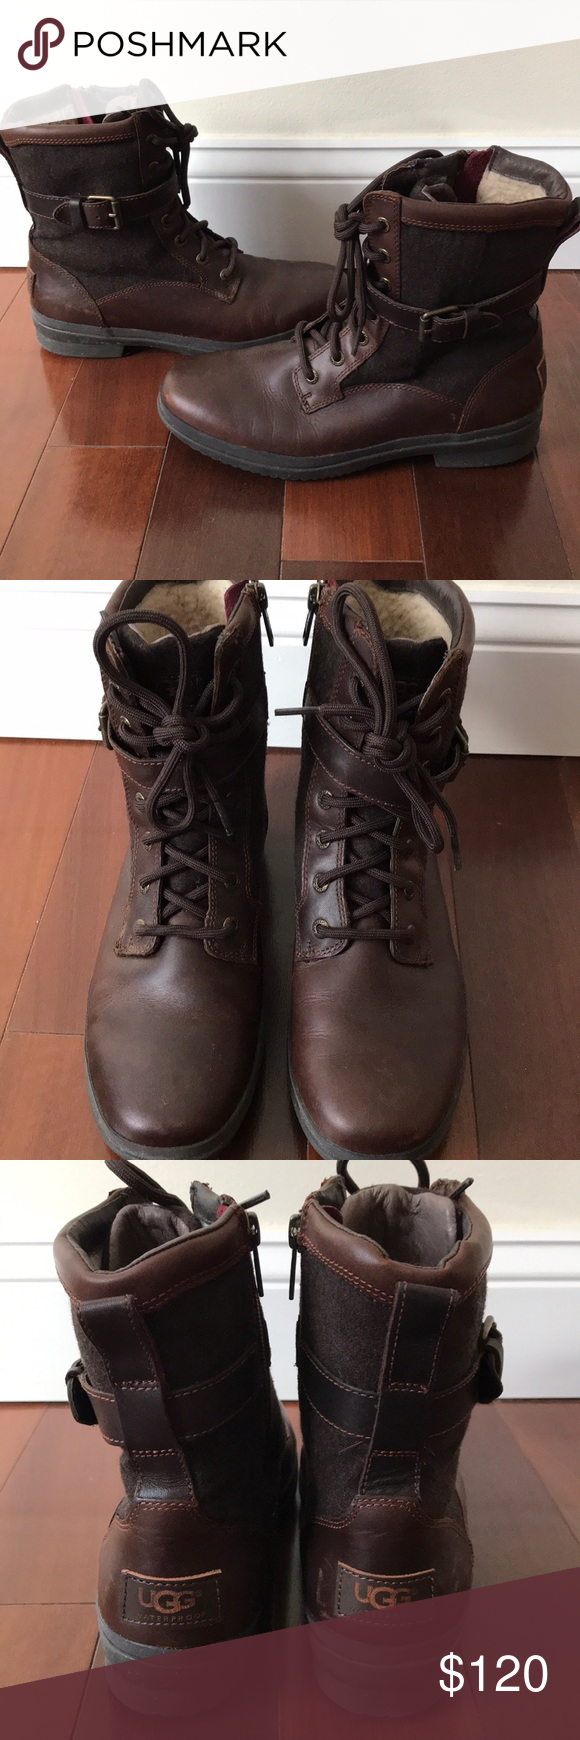 95ed327a349 Kesey Boots UGG Kesey Boots by UGG. Size 7. Brown. Worn a few times ...